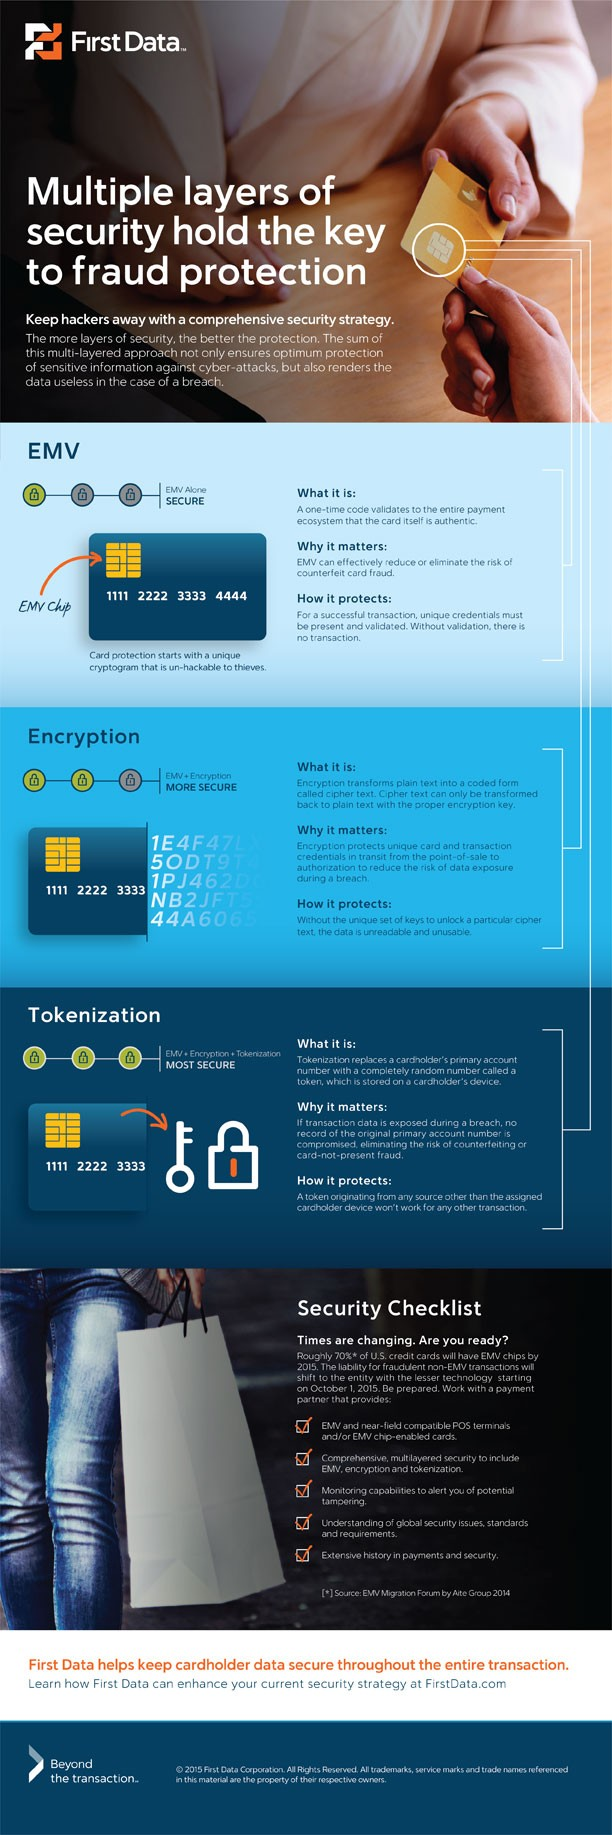 First Data EMV security infogrpahic